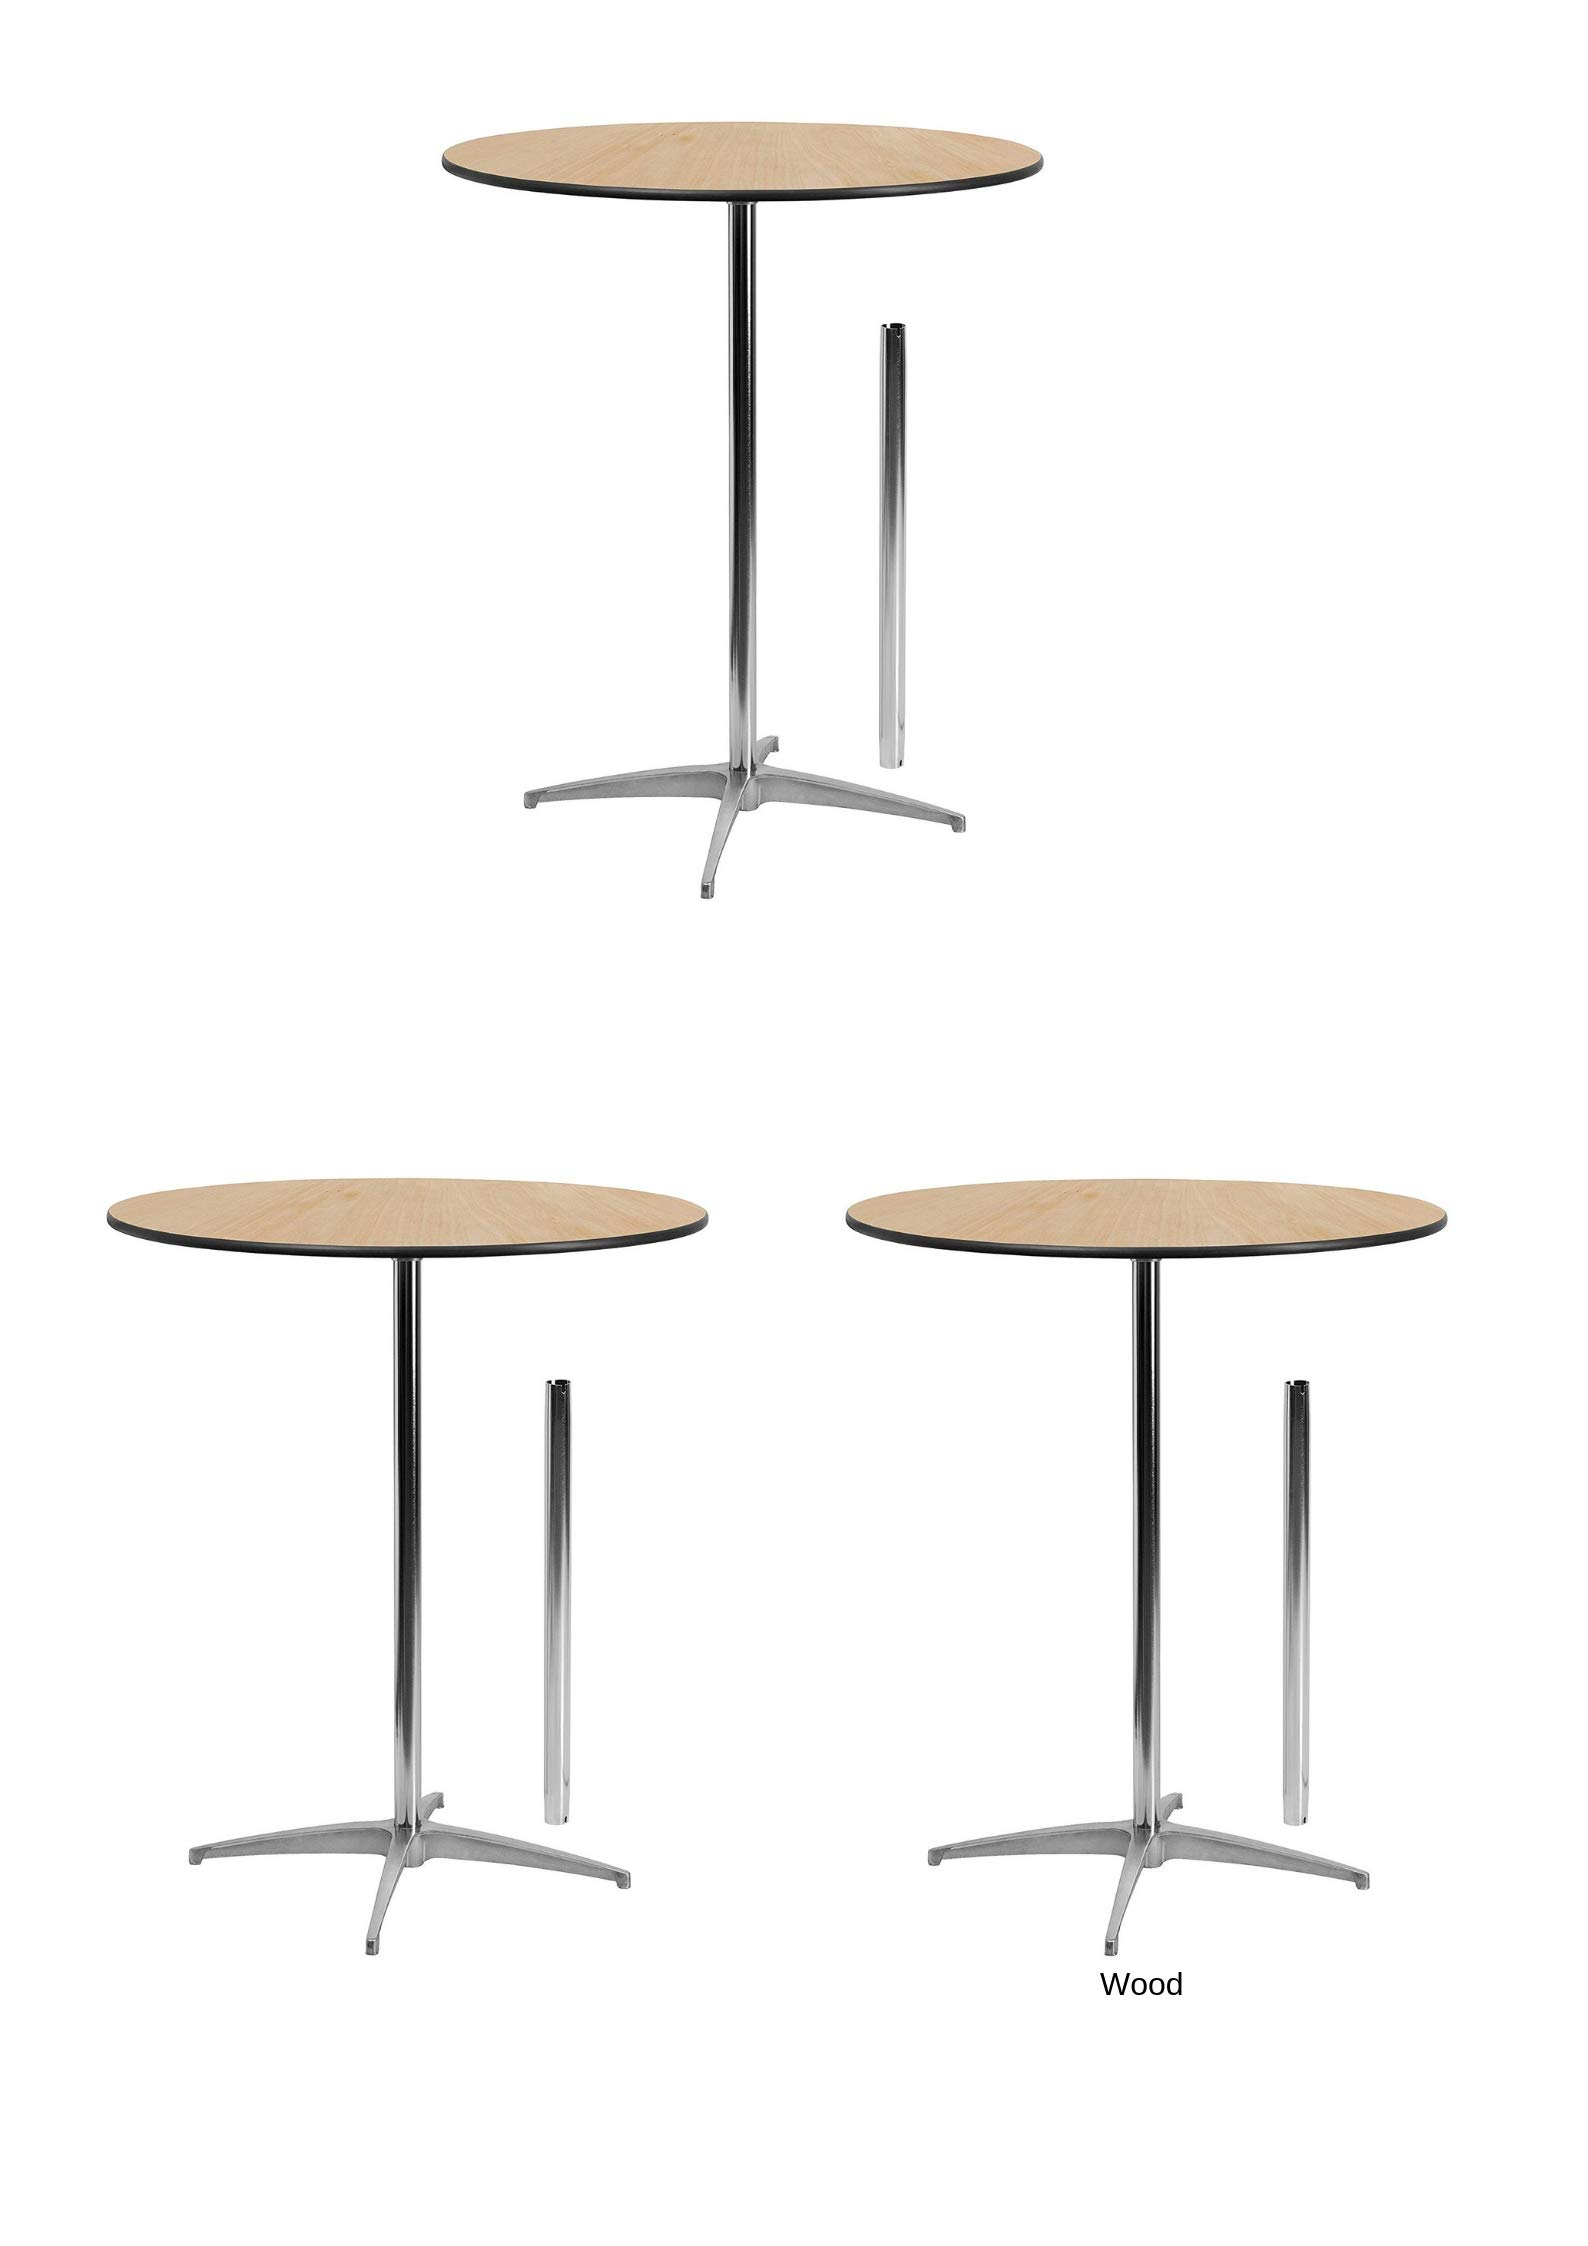 Flash Furniture 36'' Round Wood Cocktail Table with 30'' and 42'' Columns (3 Pack,36-Inch)